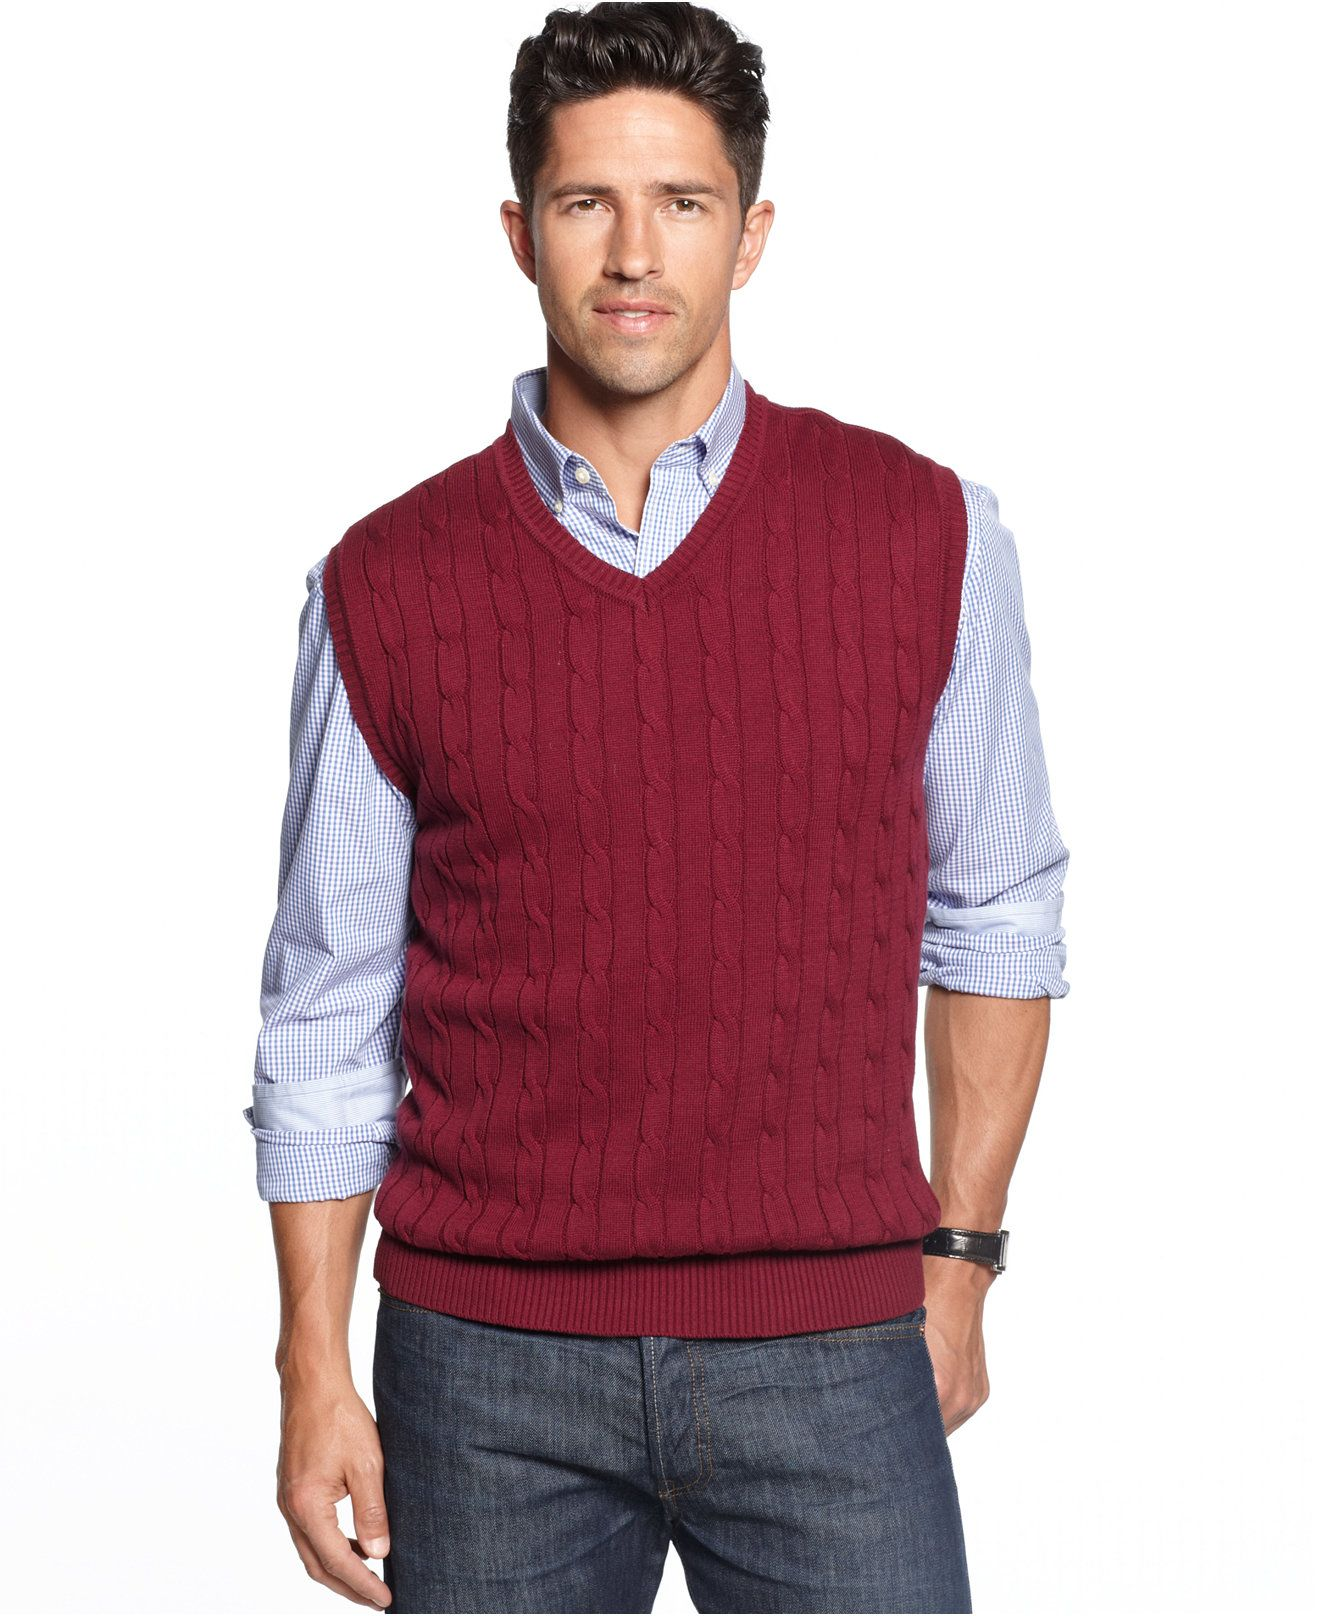 Club Room Solid Cable-Knit Sweater Vest - Sweaters - Men - Macy's ...